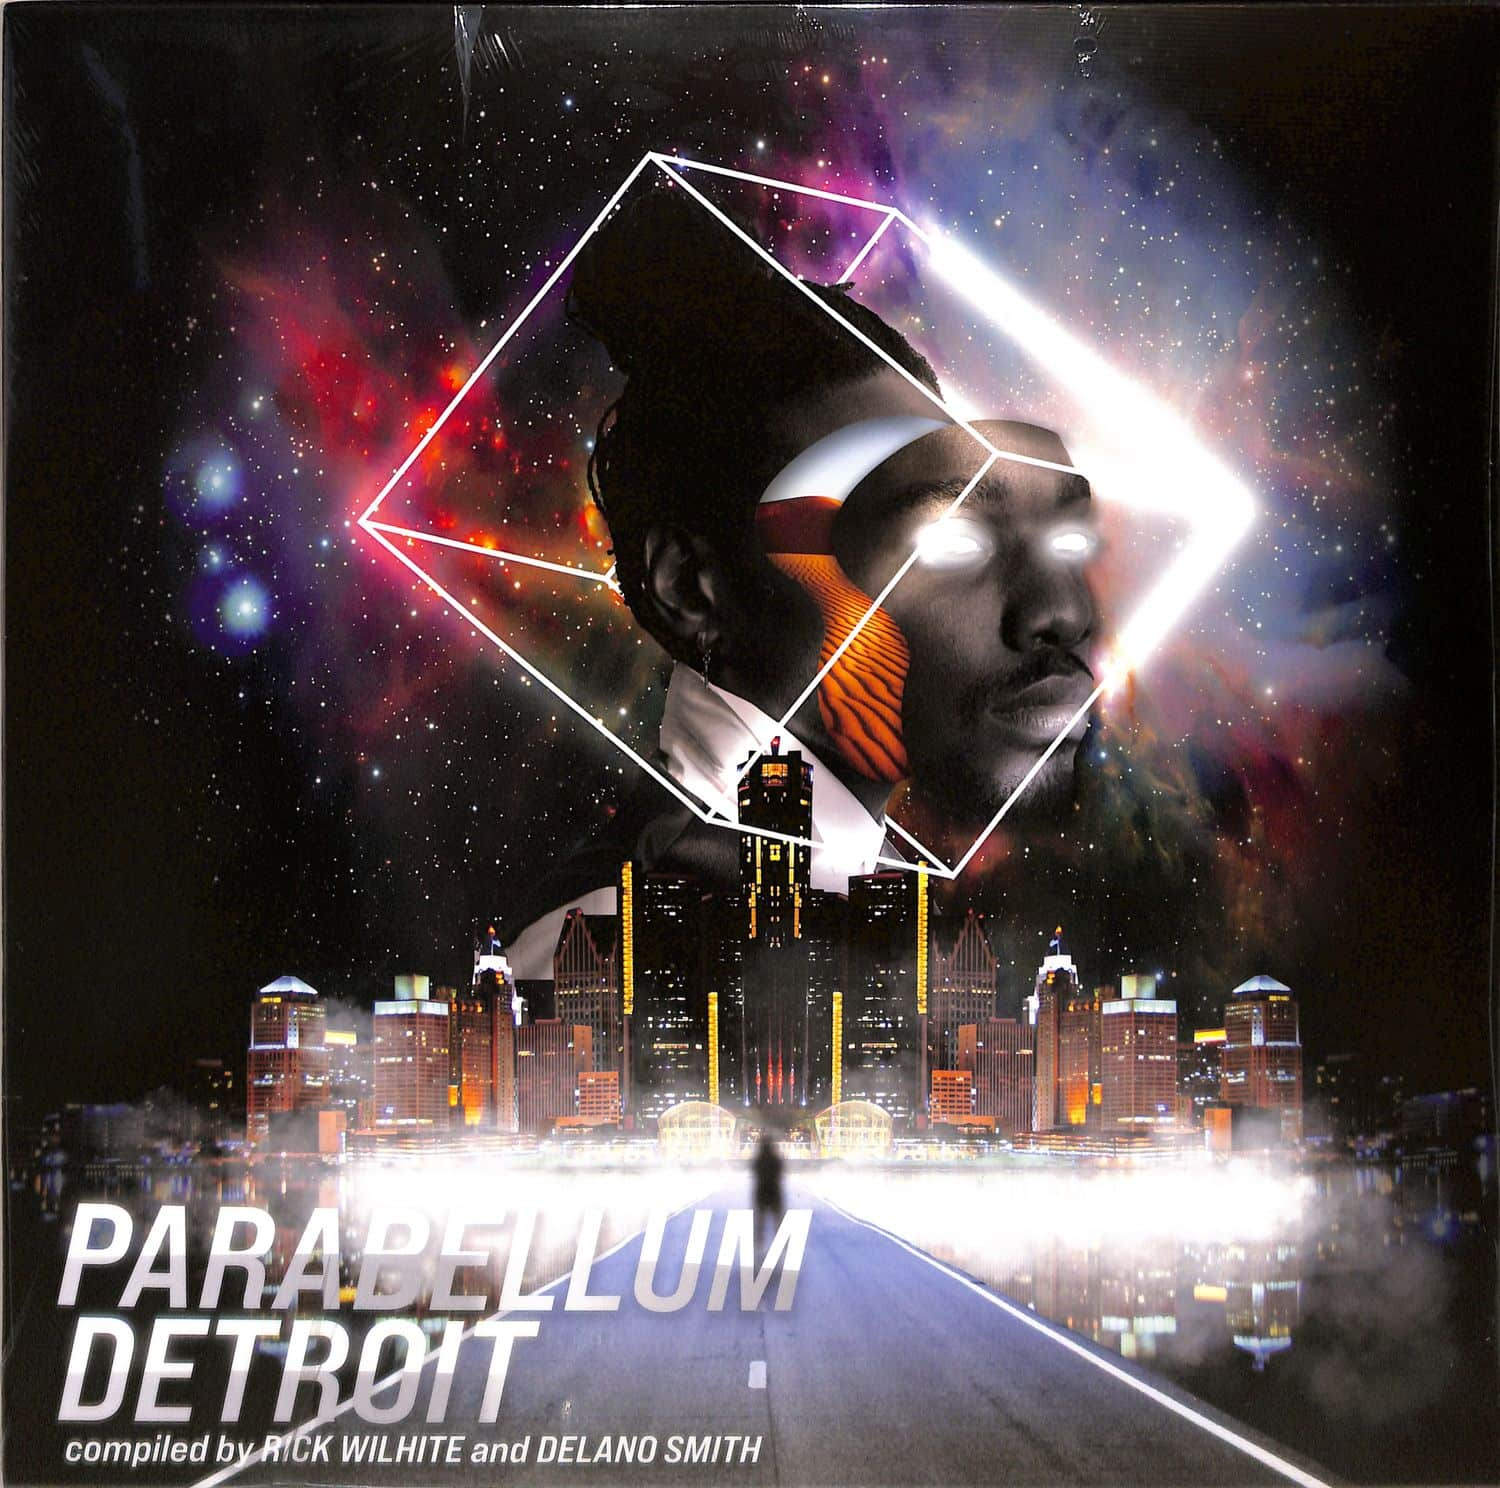 V/A  - PARABELLUM DETROIT, COMPILED BY RICK WILHITE & DELANO SMITH